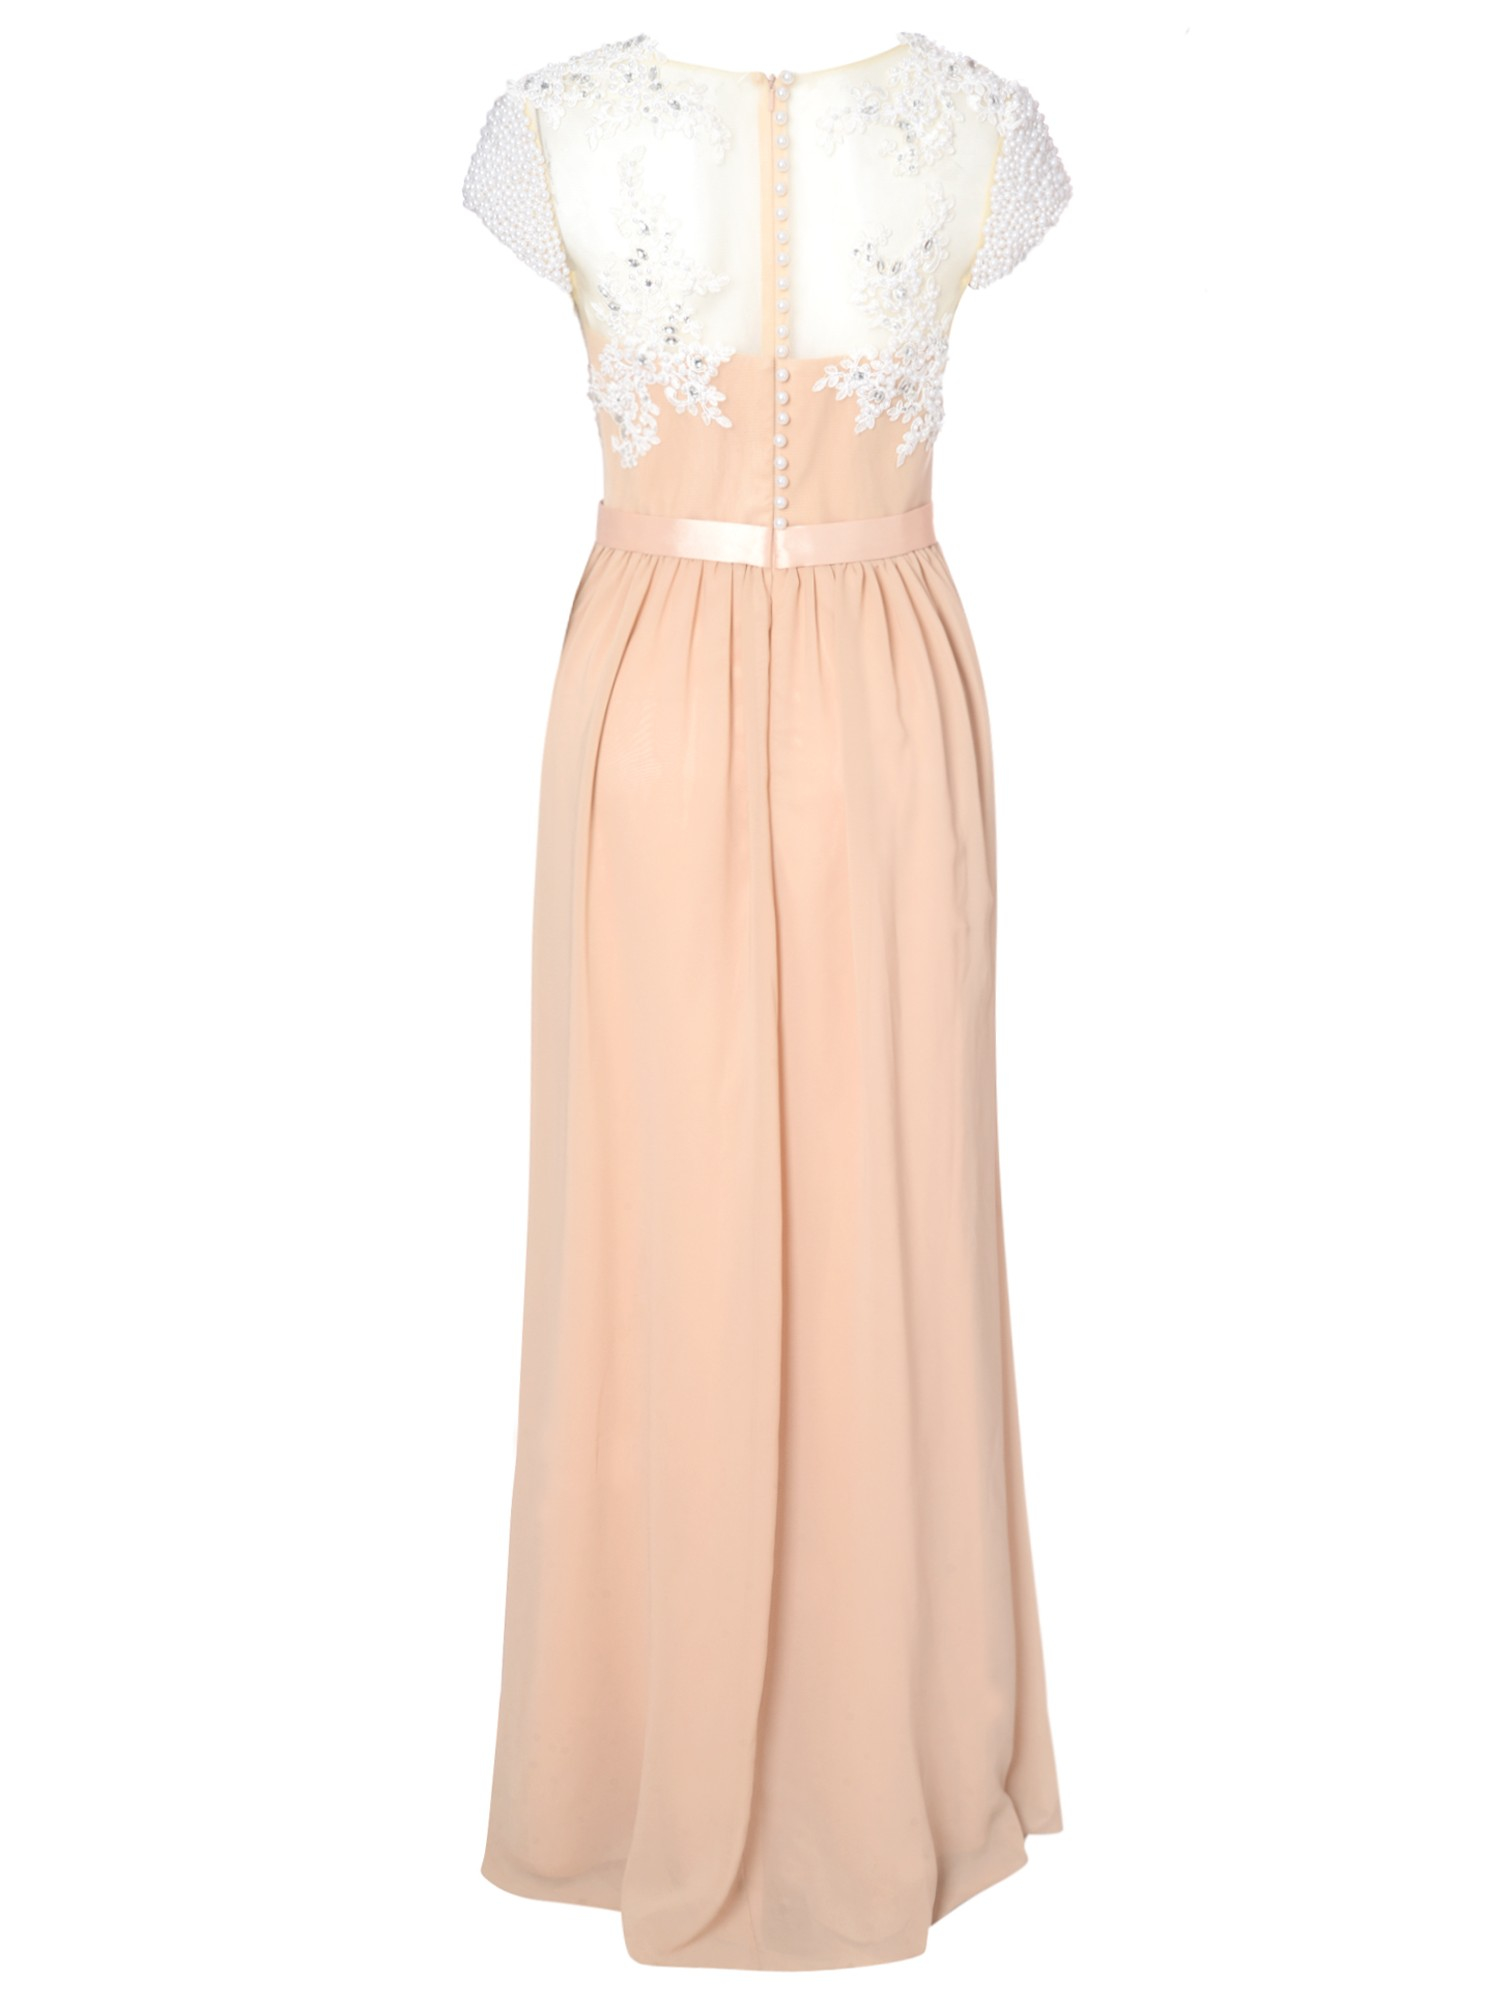 21b11fb0bad True Decadence Lace Embellished Maxi Dress in Pink - Lyst